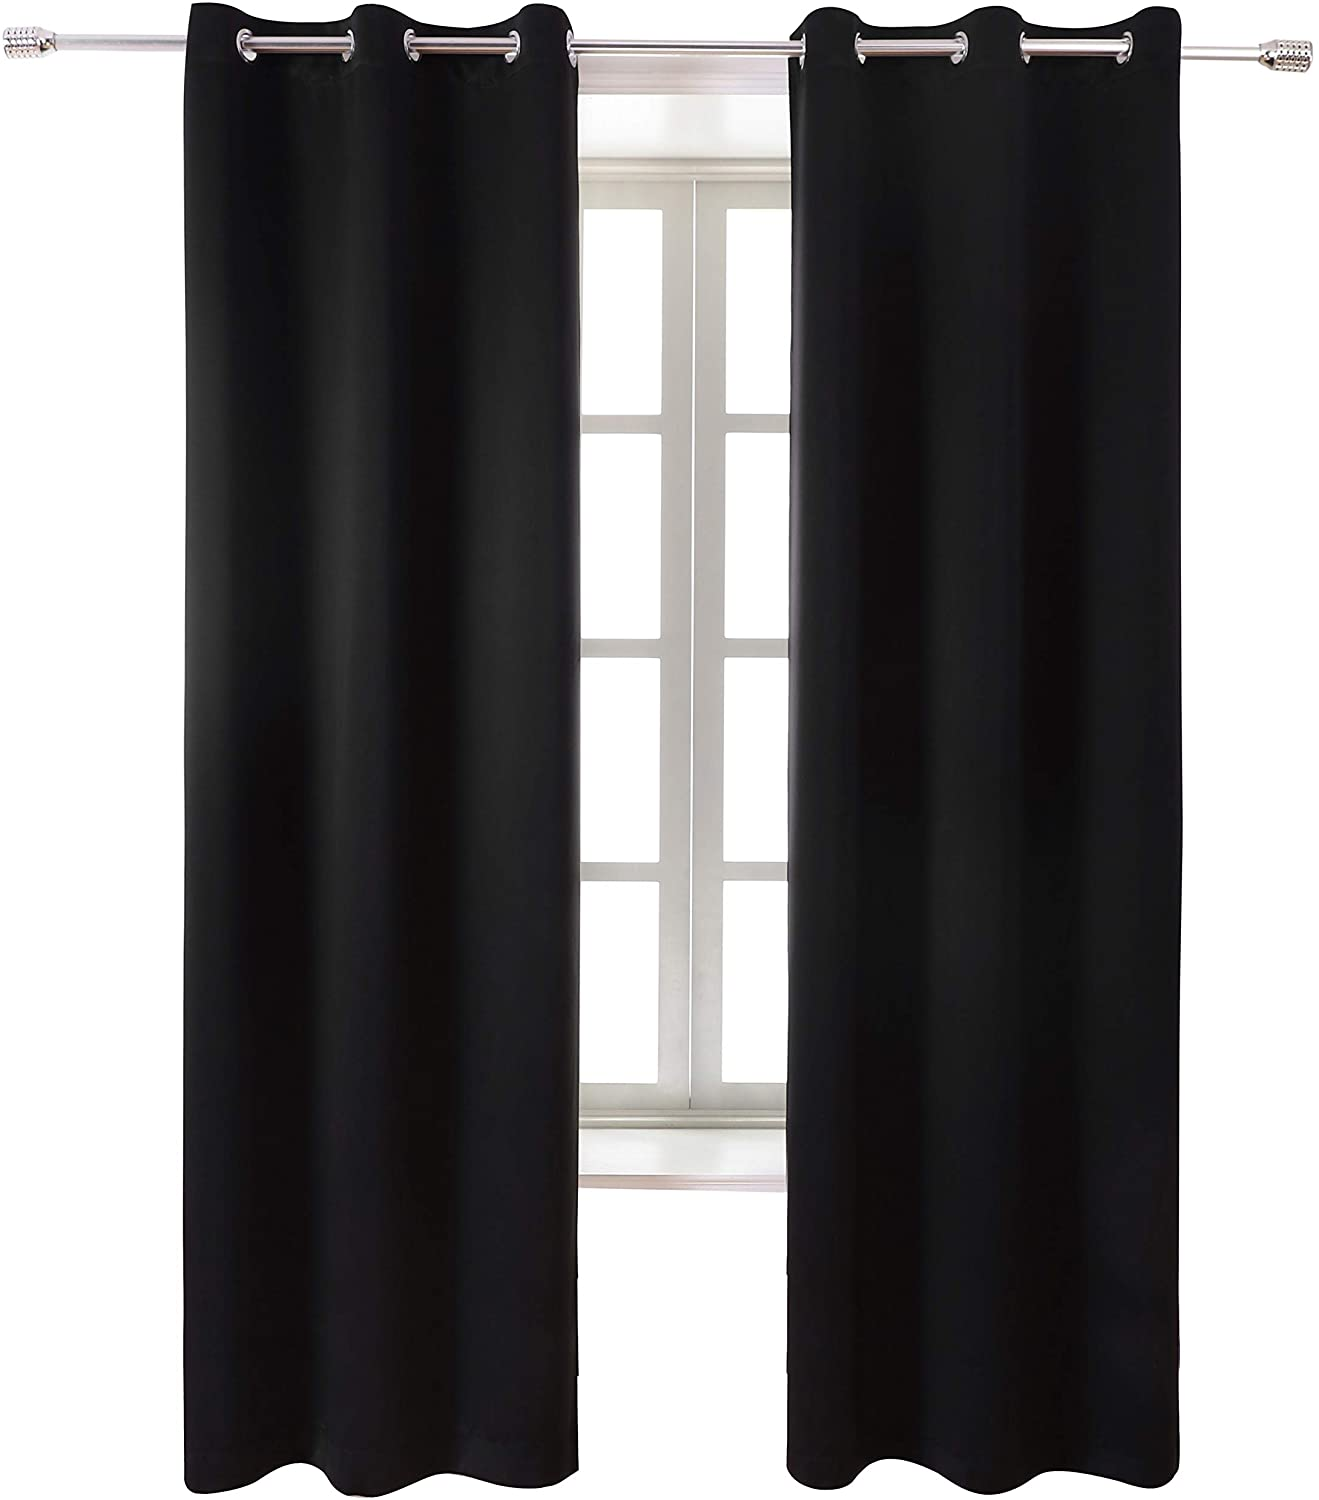 WONTEX Blackout Curtains Room Darkening Thermal Insulated with Grommet Window Curtain for Living Room, 38 x 72 inch, Black, 2 Panels